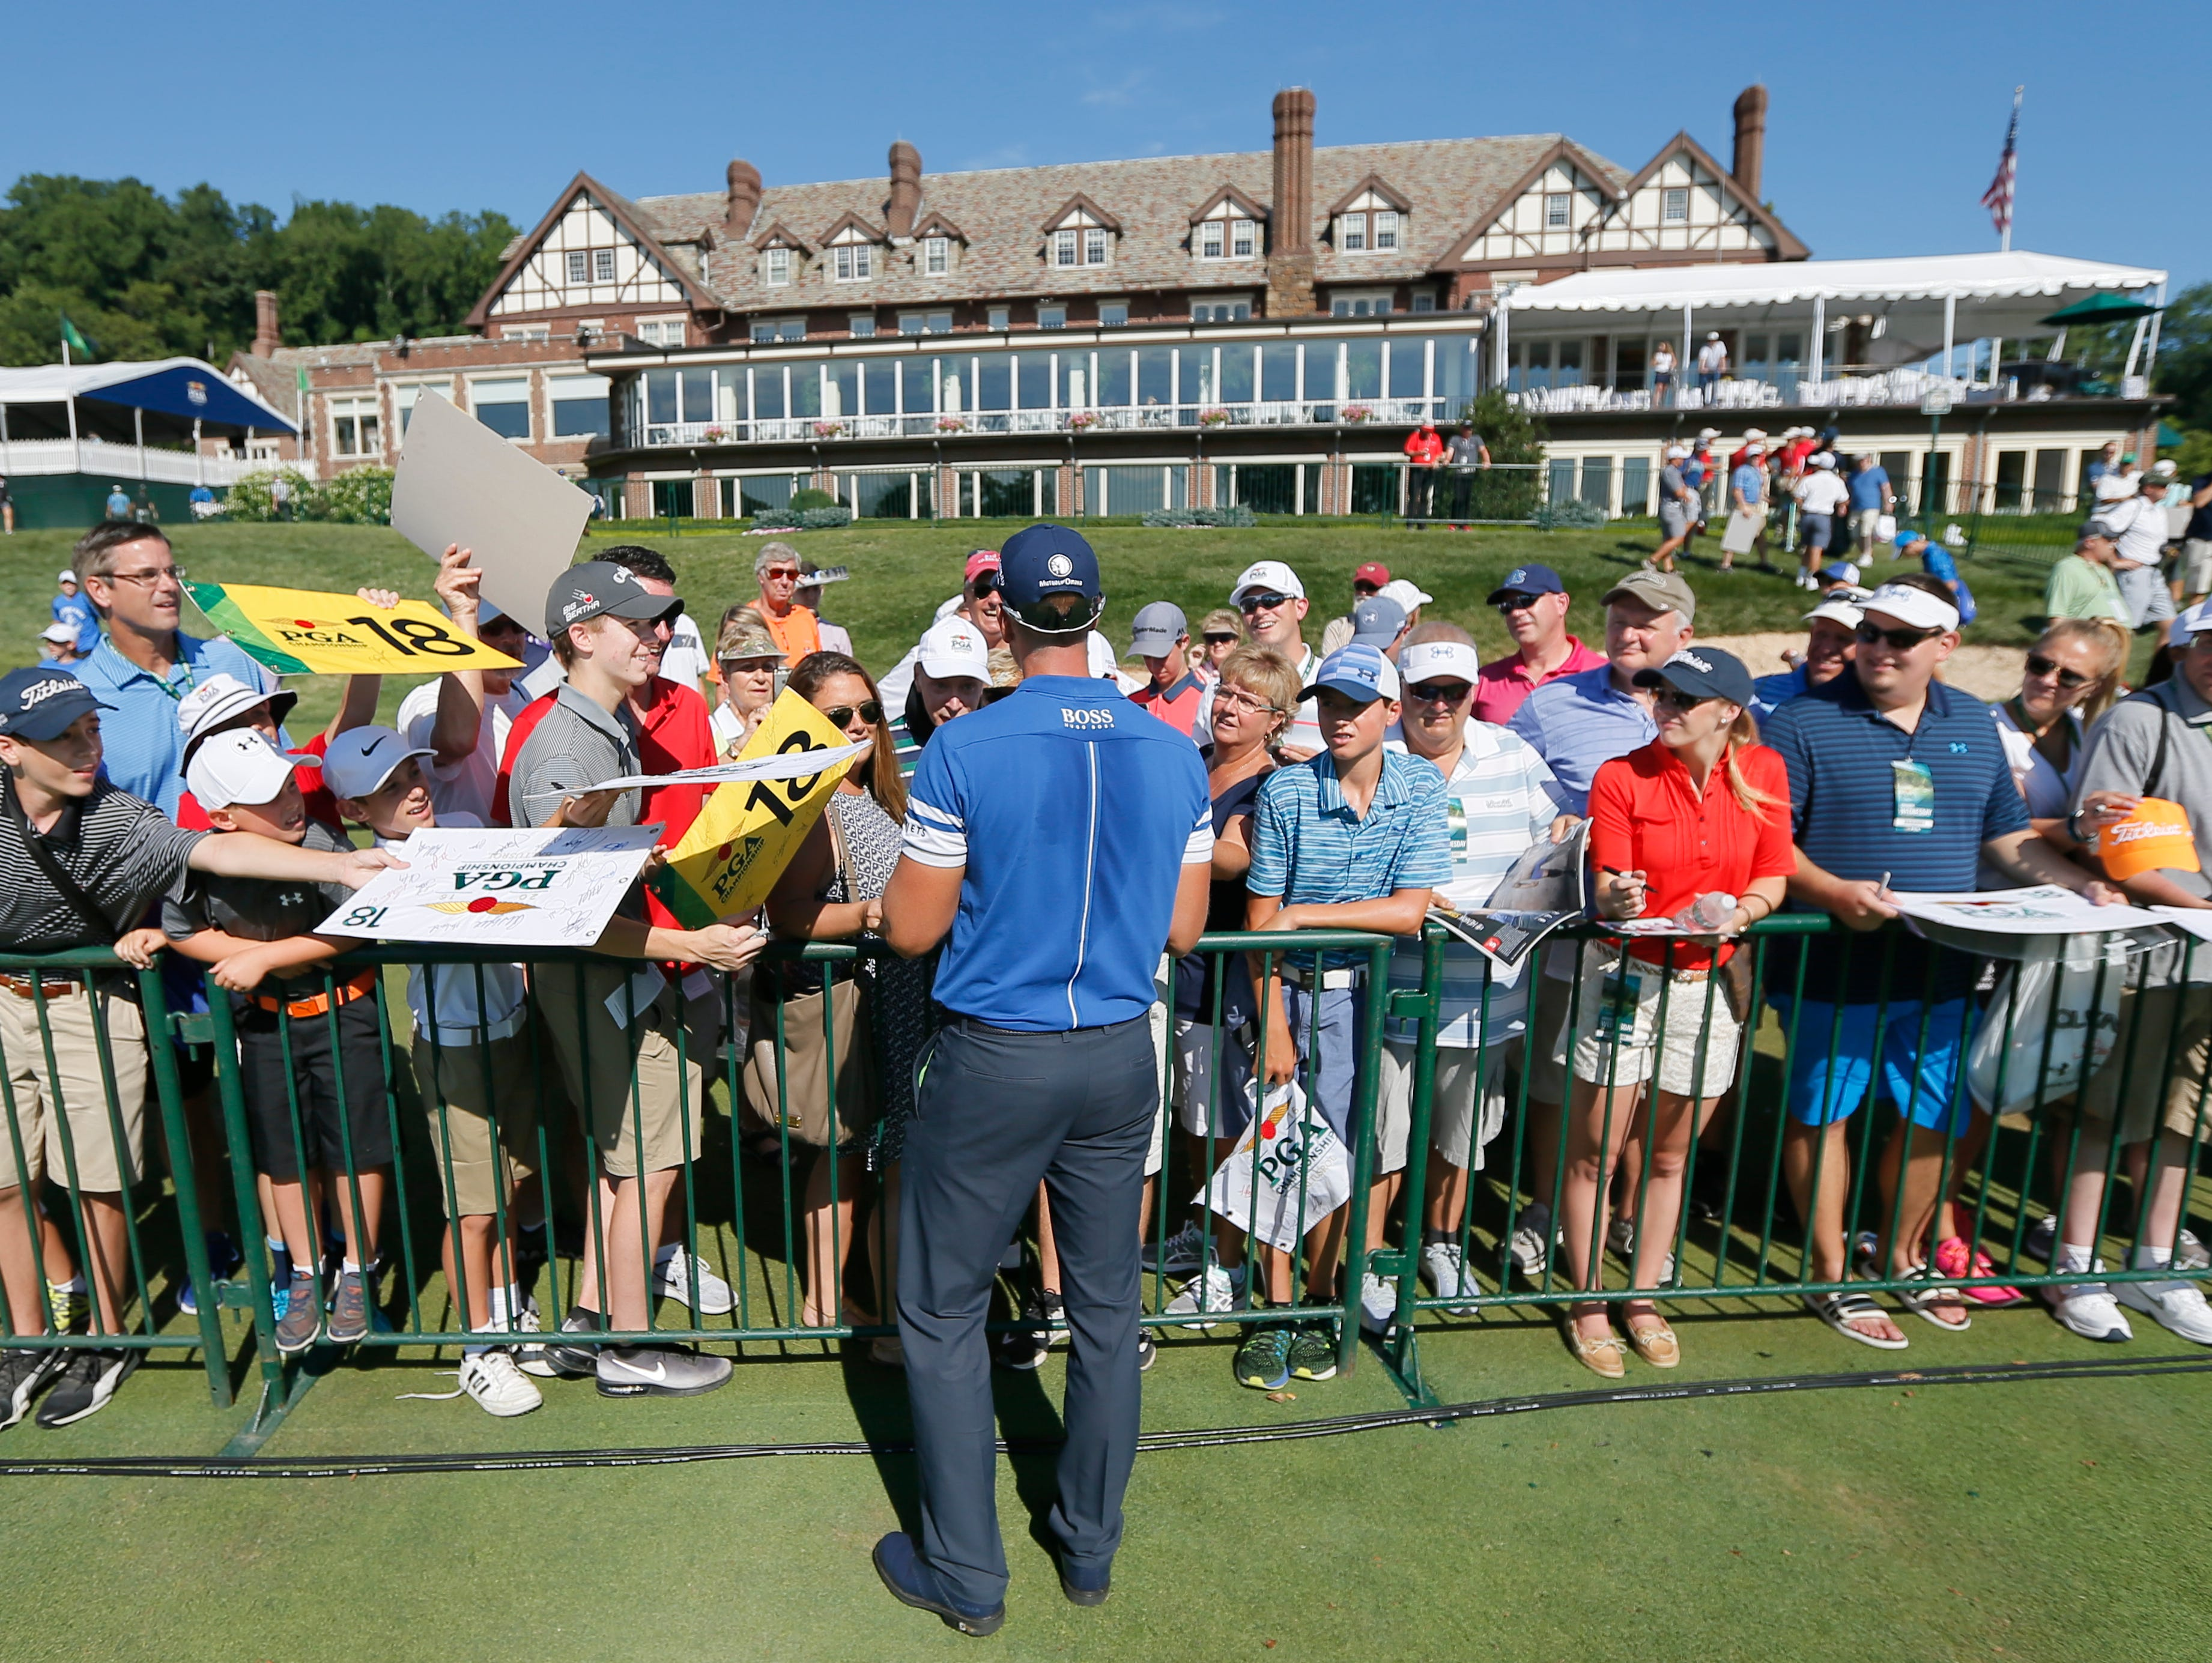 Henrik Stenson signs autographs on the 18th hole during a practice round for the PGA Championship golf tournament at Baltusrol Golf Club in Springfield, N.J.